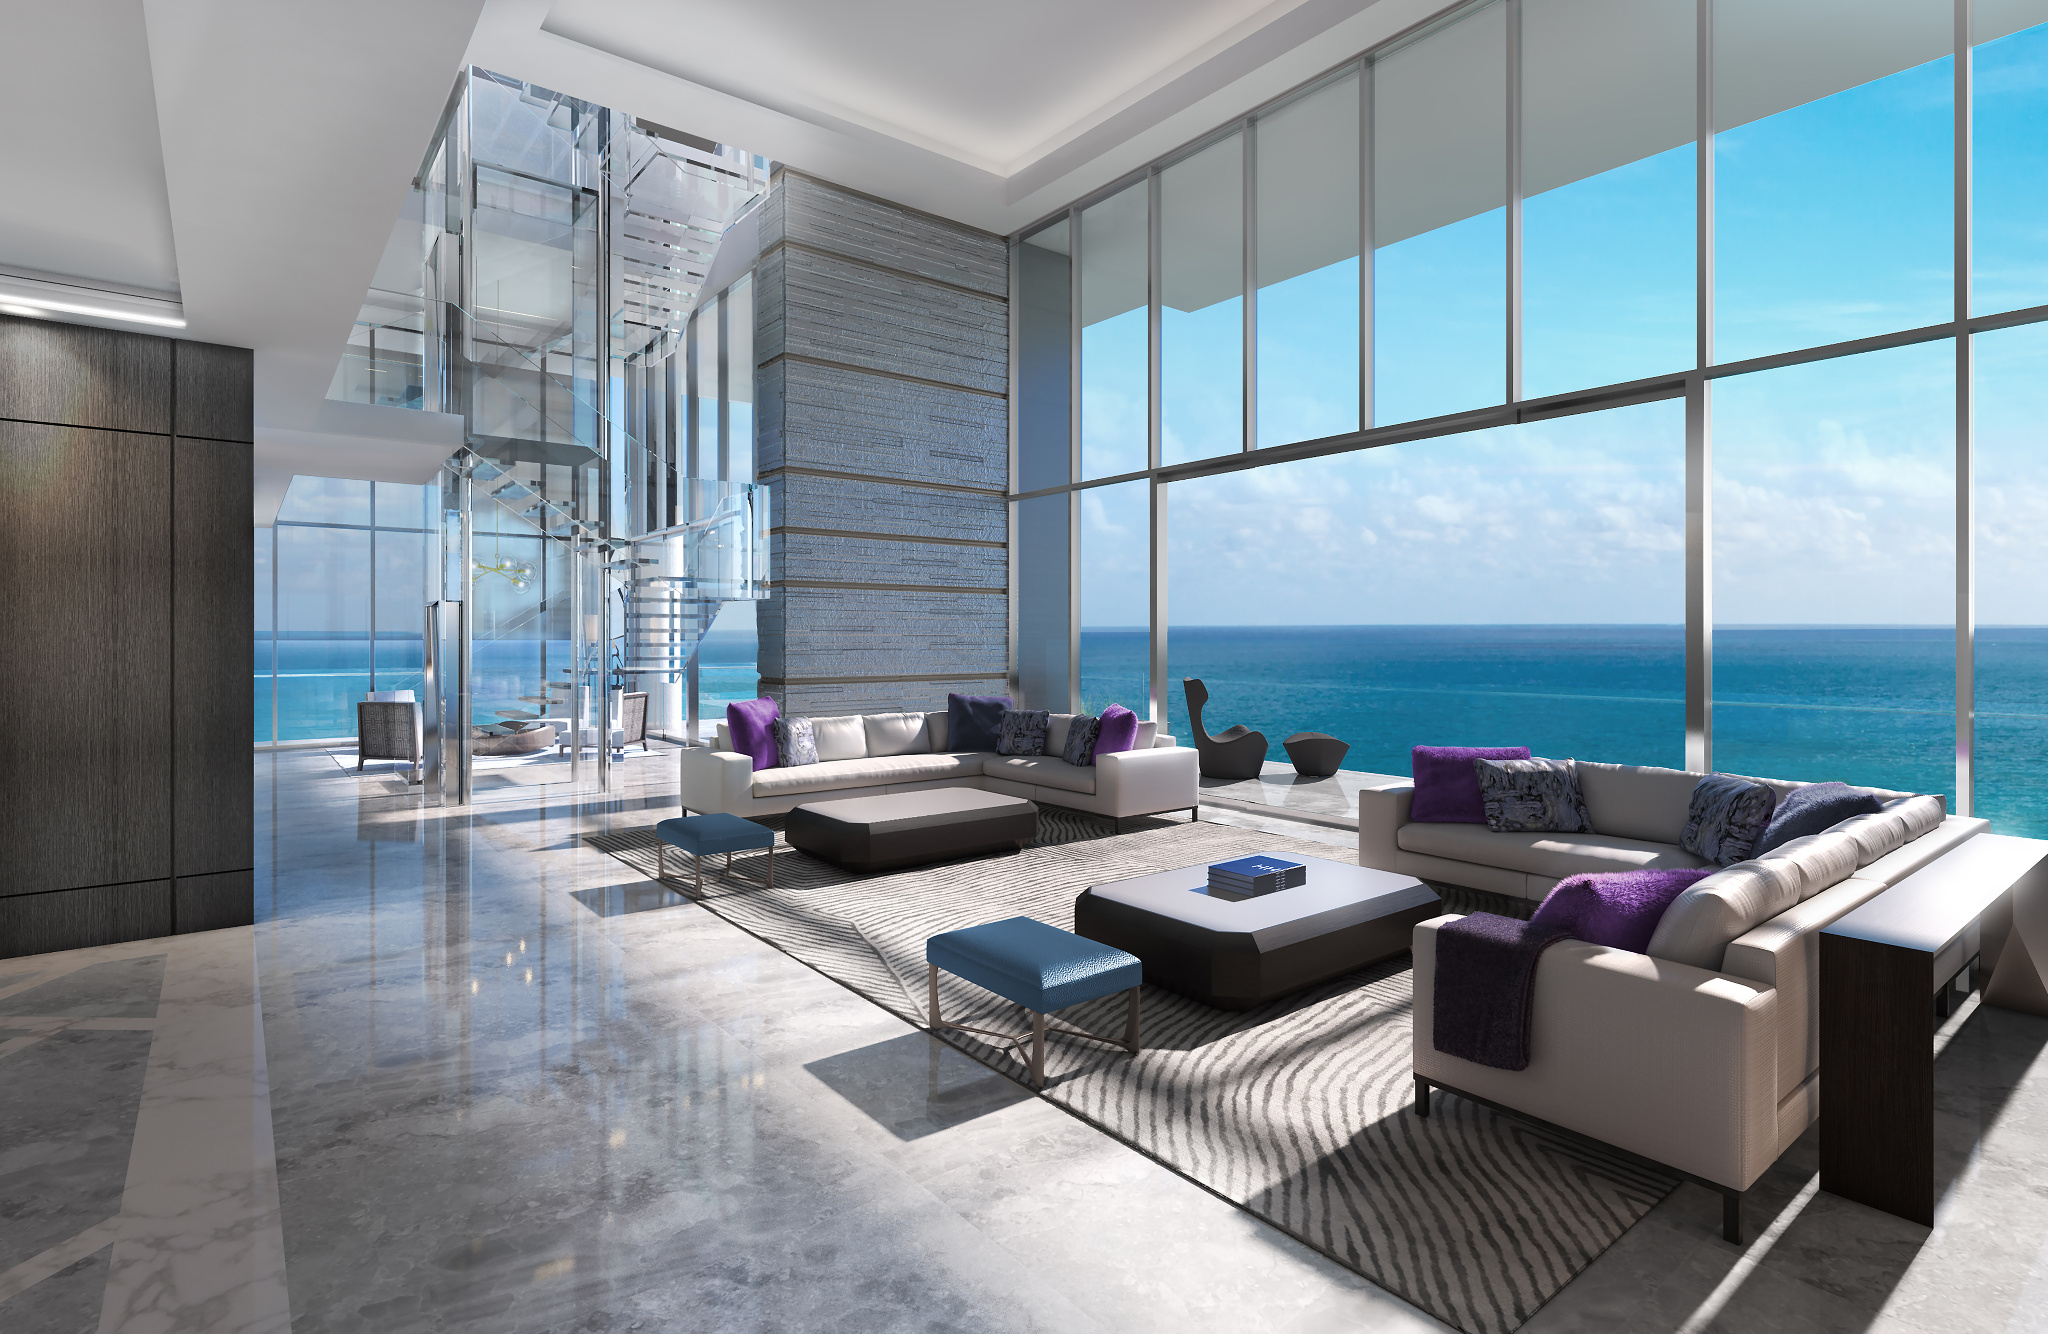 The Residences Miami Beach